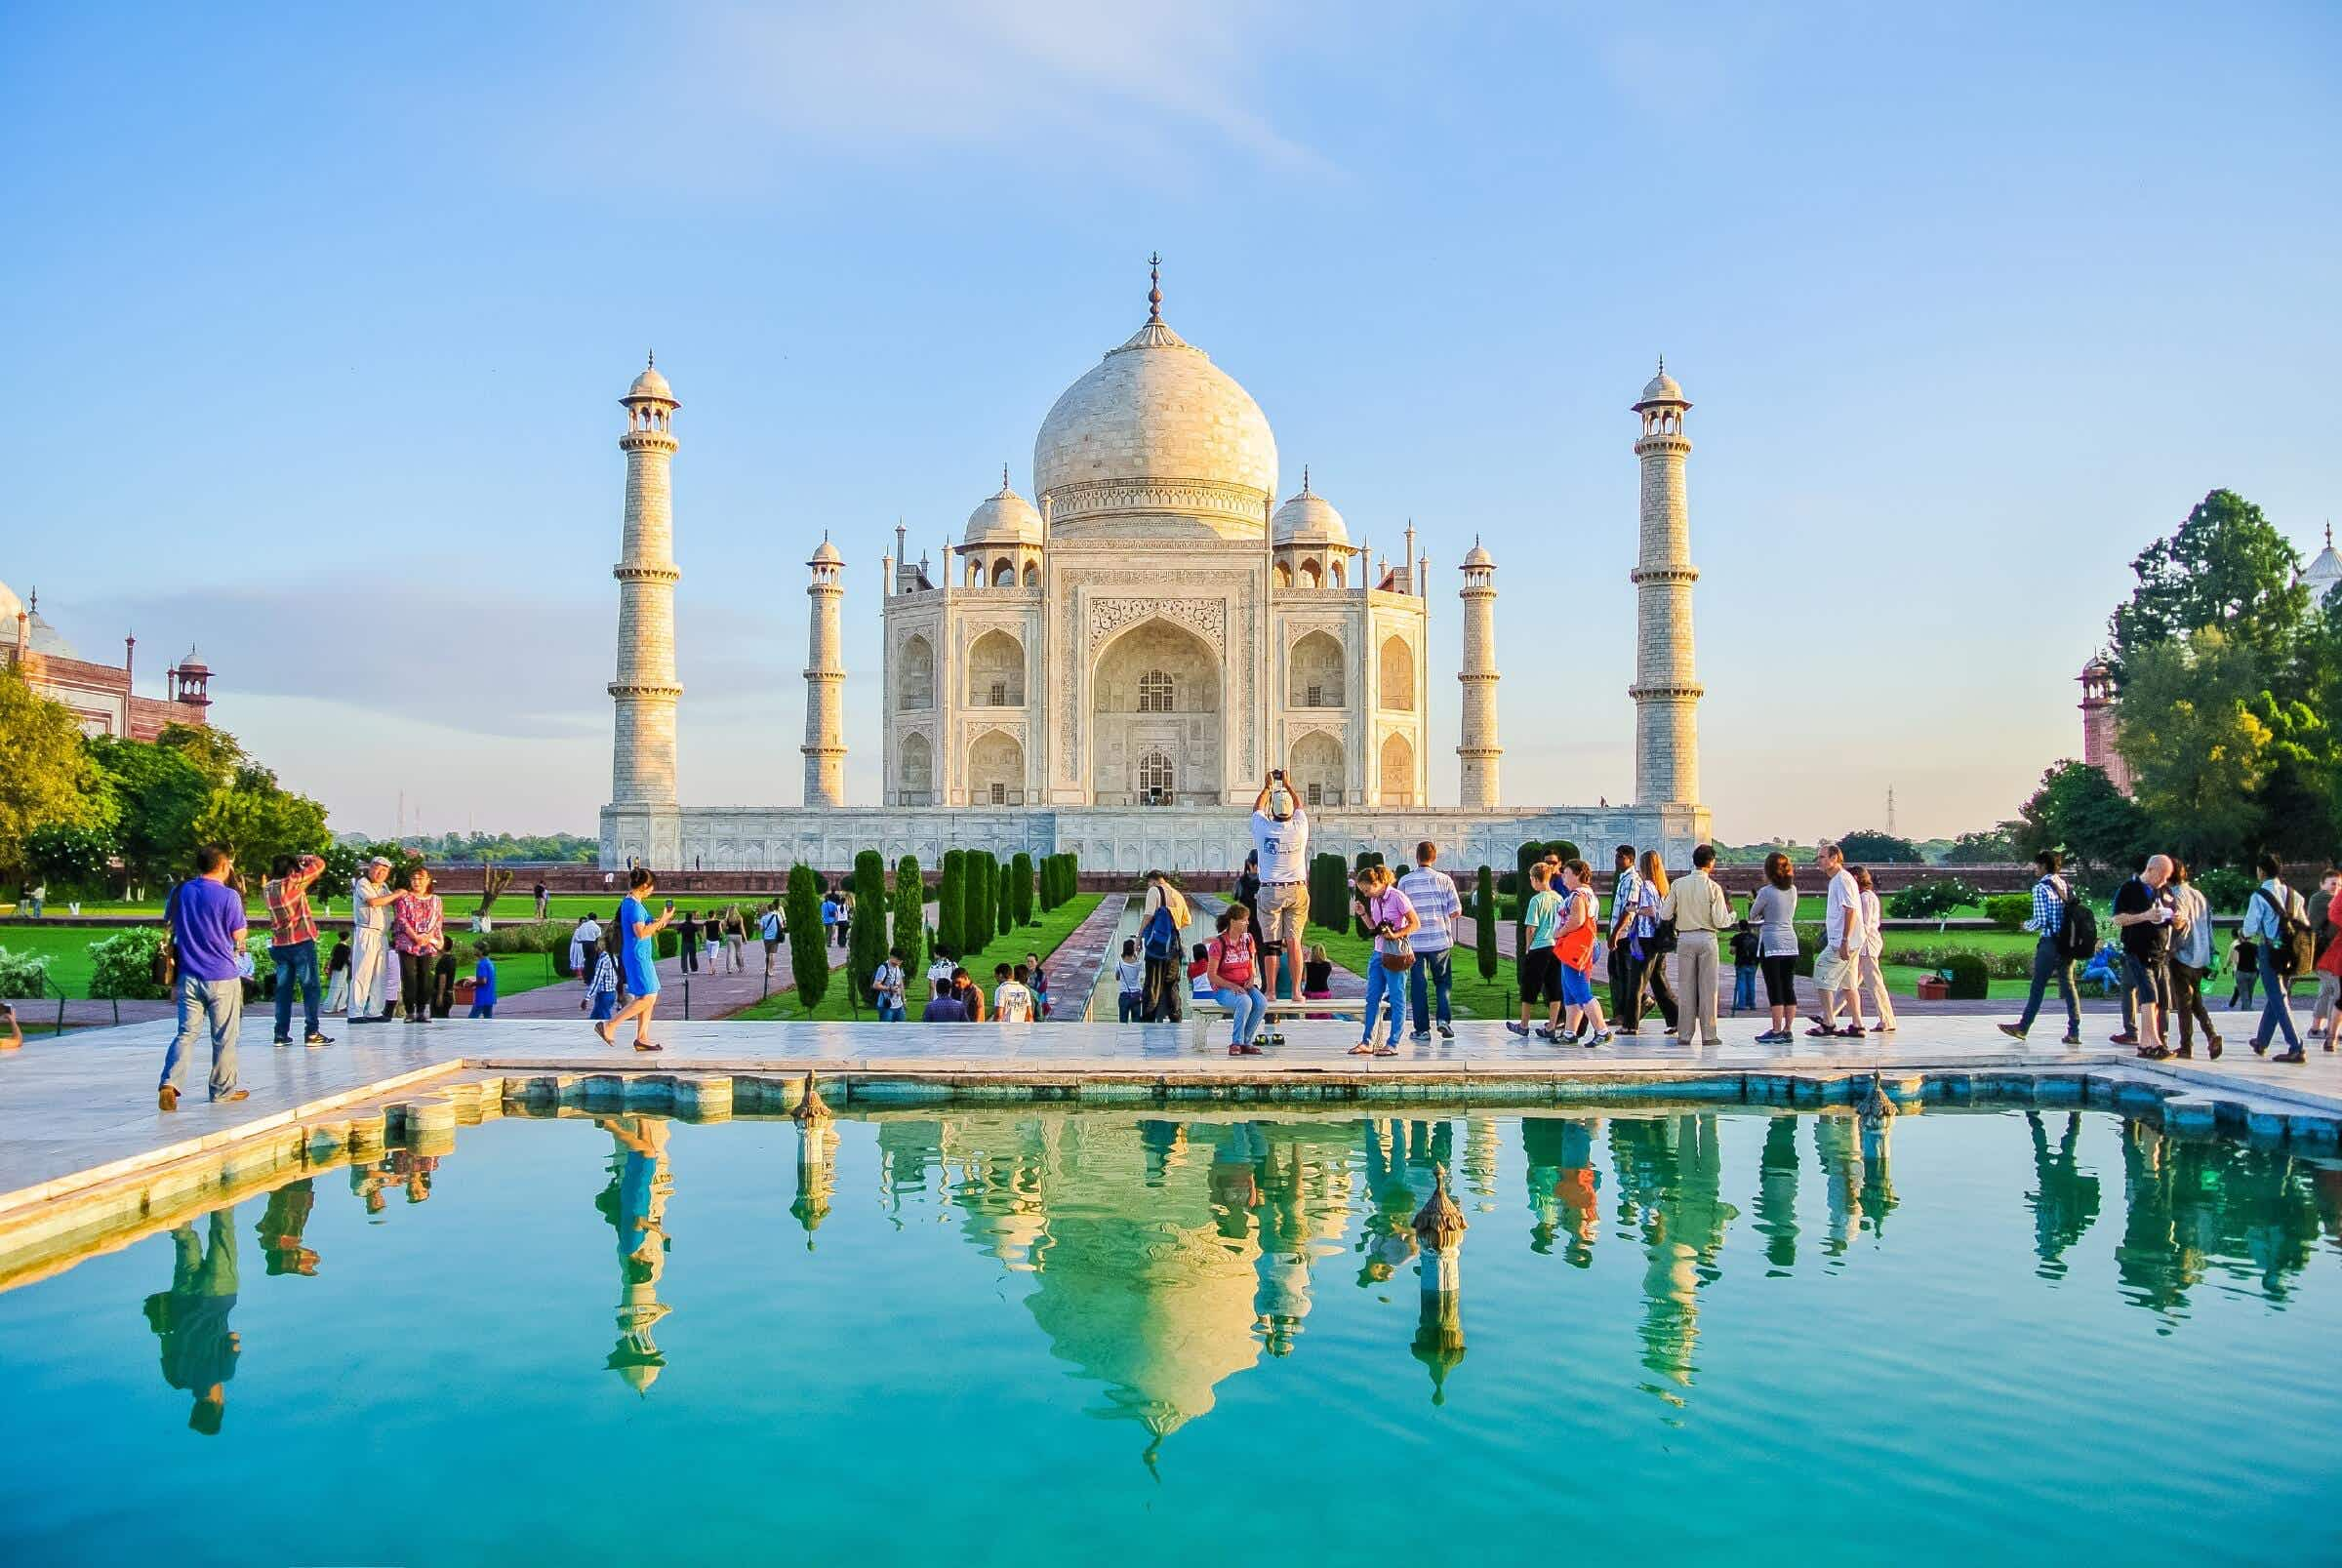 Visiting the Taj Mahal is now going to cost travellers more